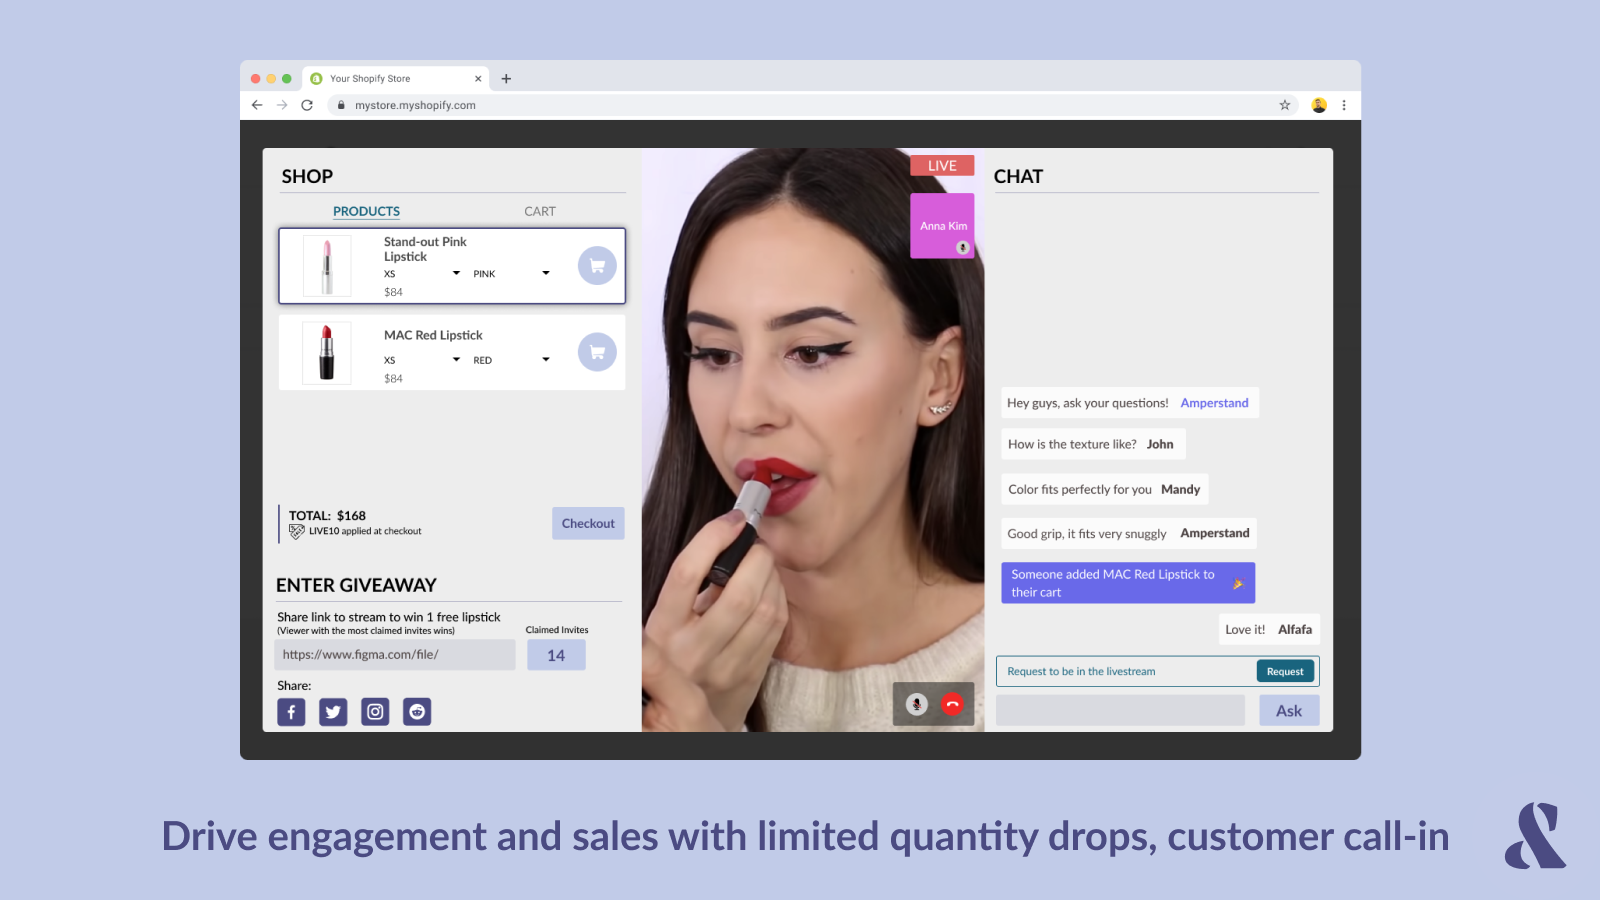 Drive sales with limited quantity drops, customer call-in